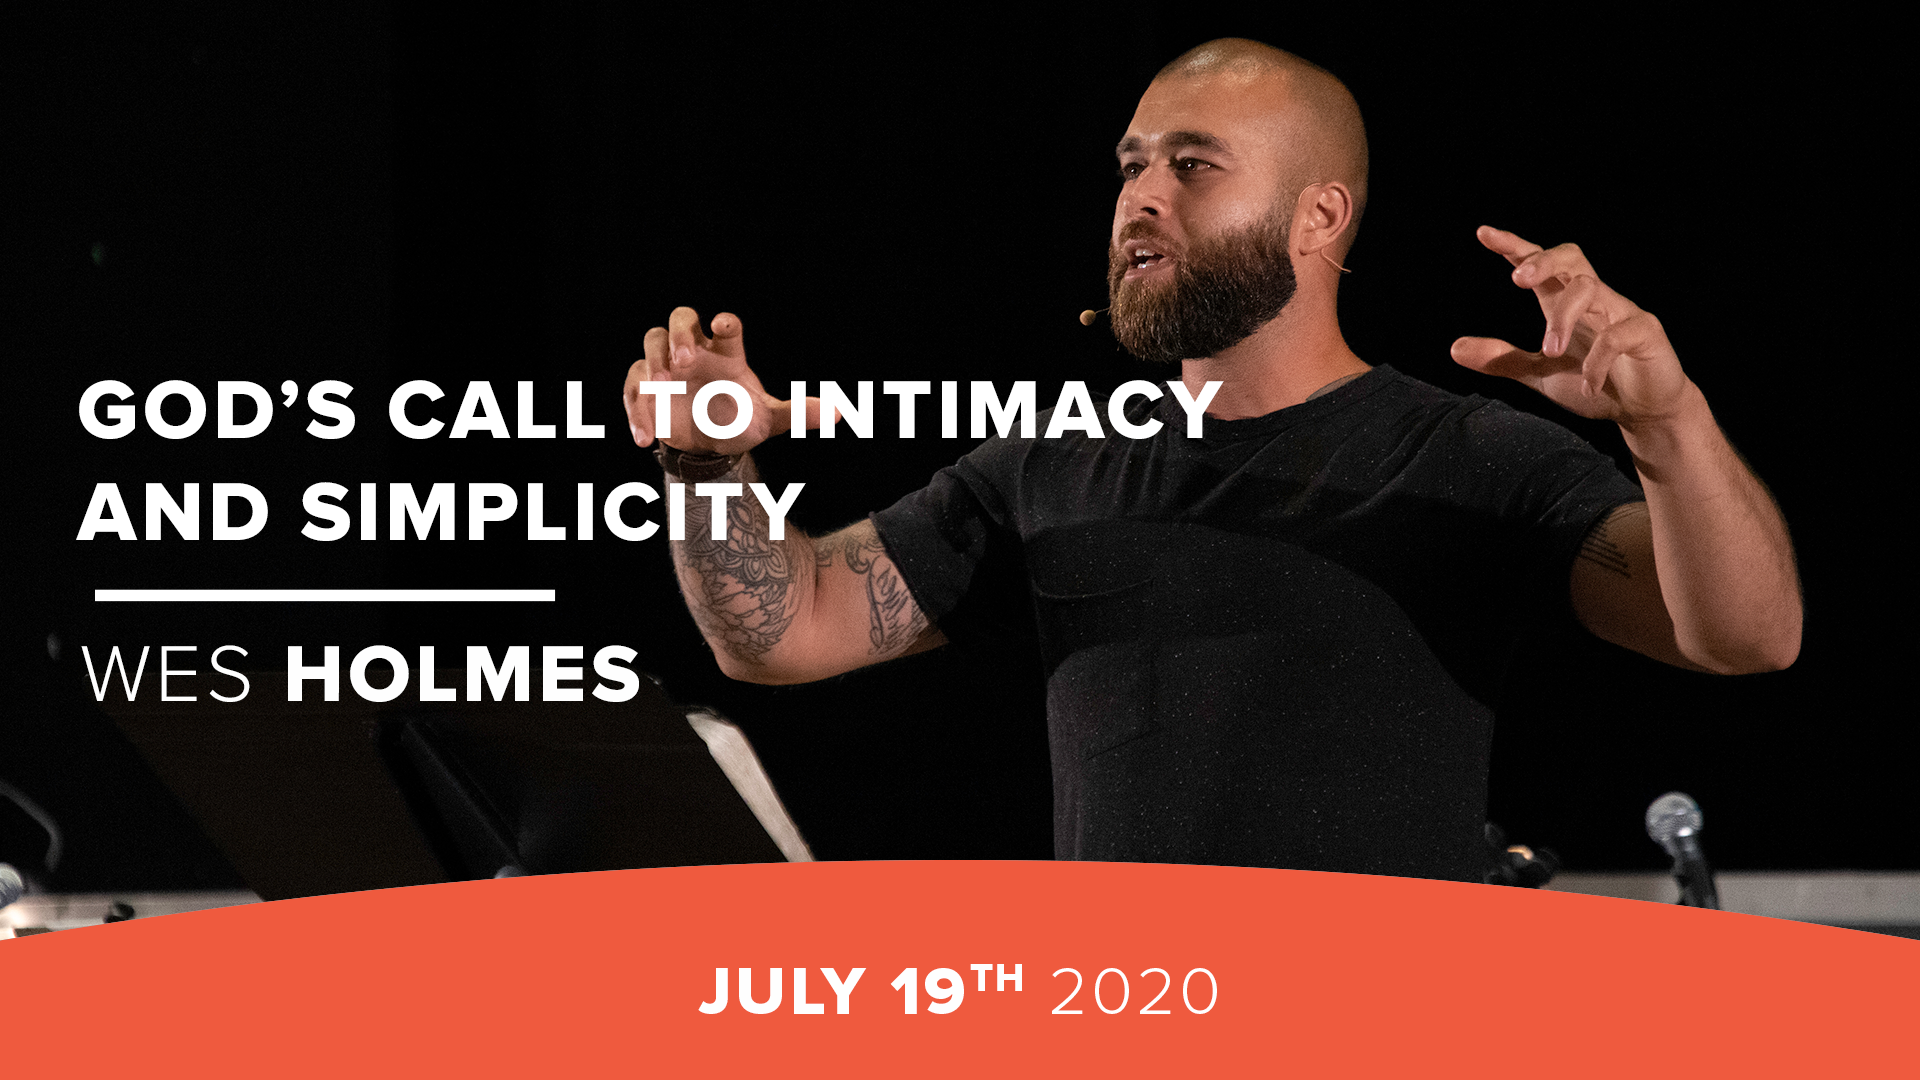 God's Call to Intimacy and Simplicity